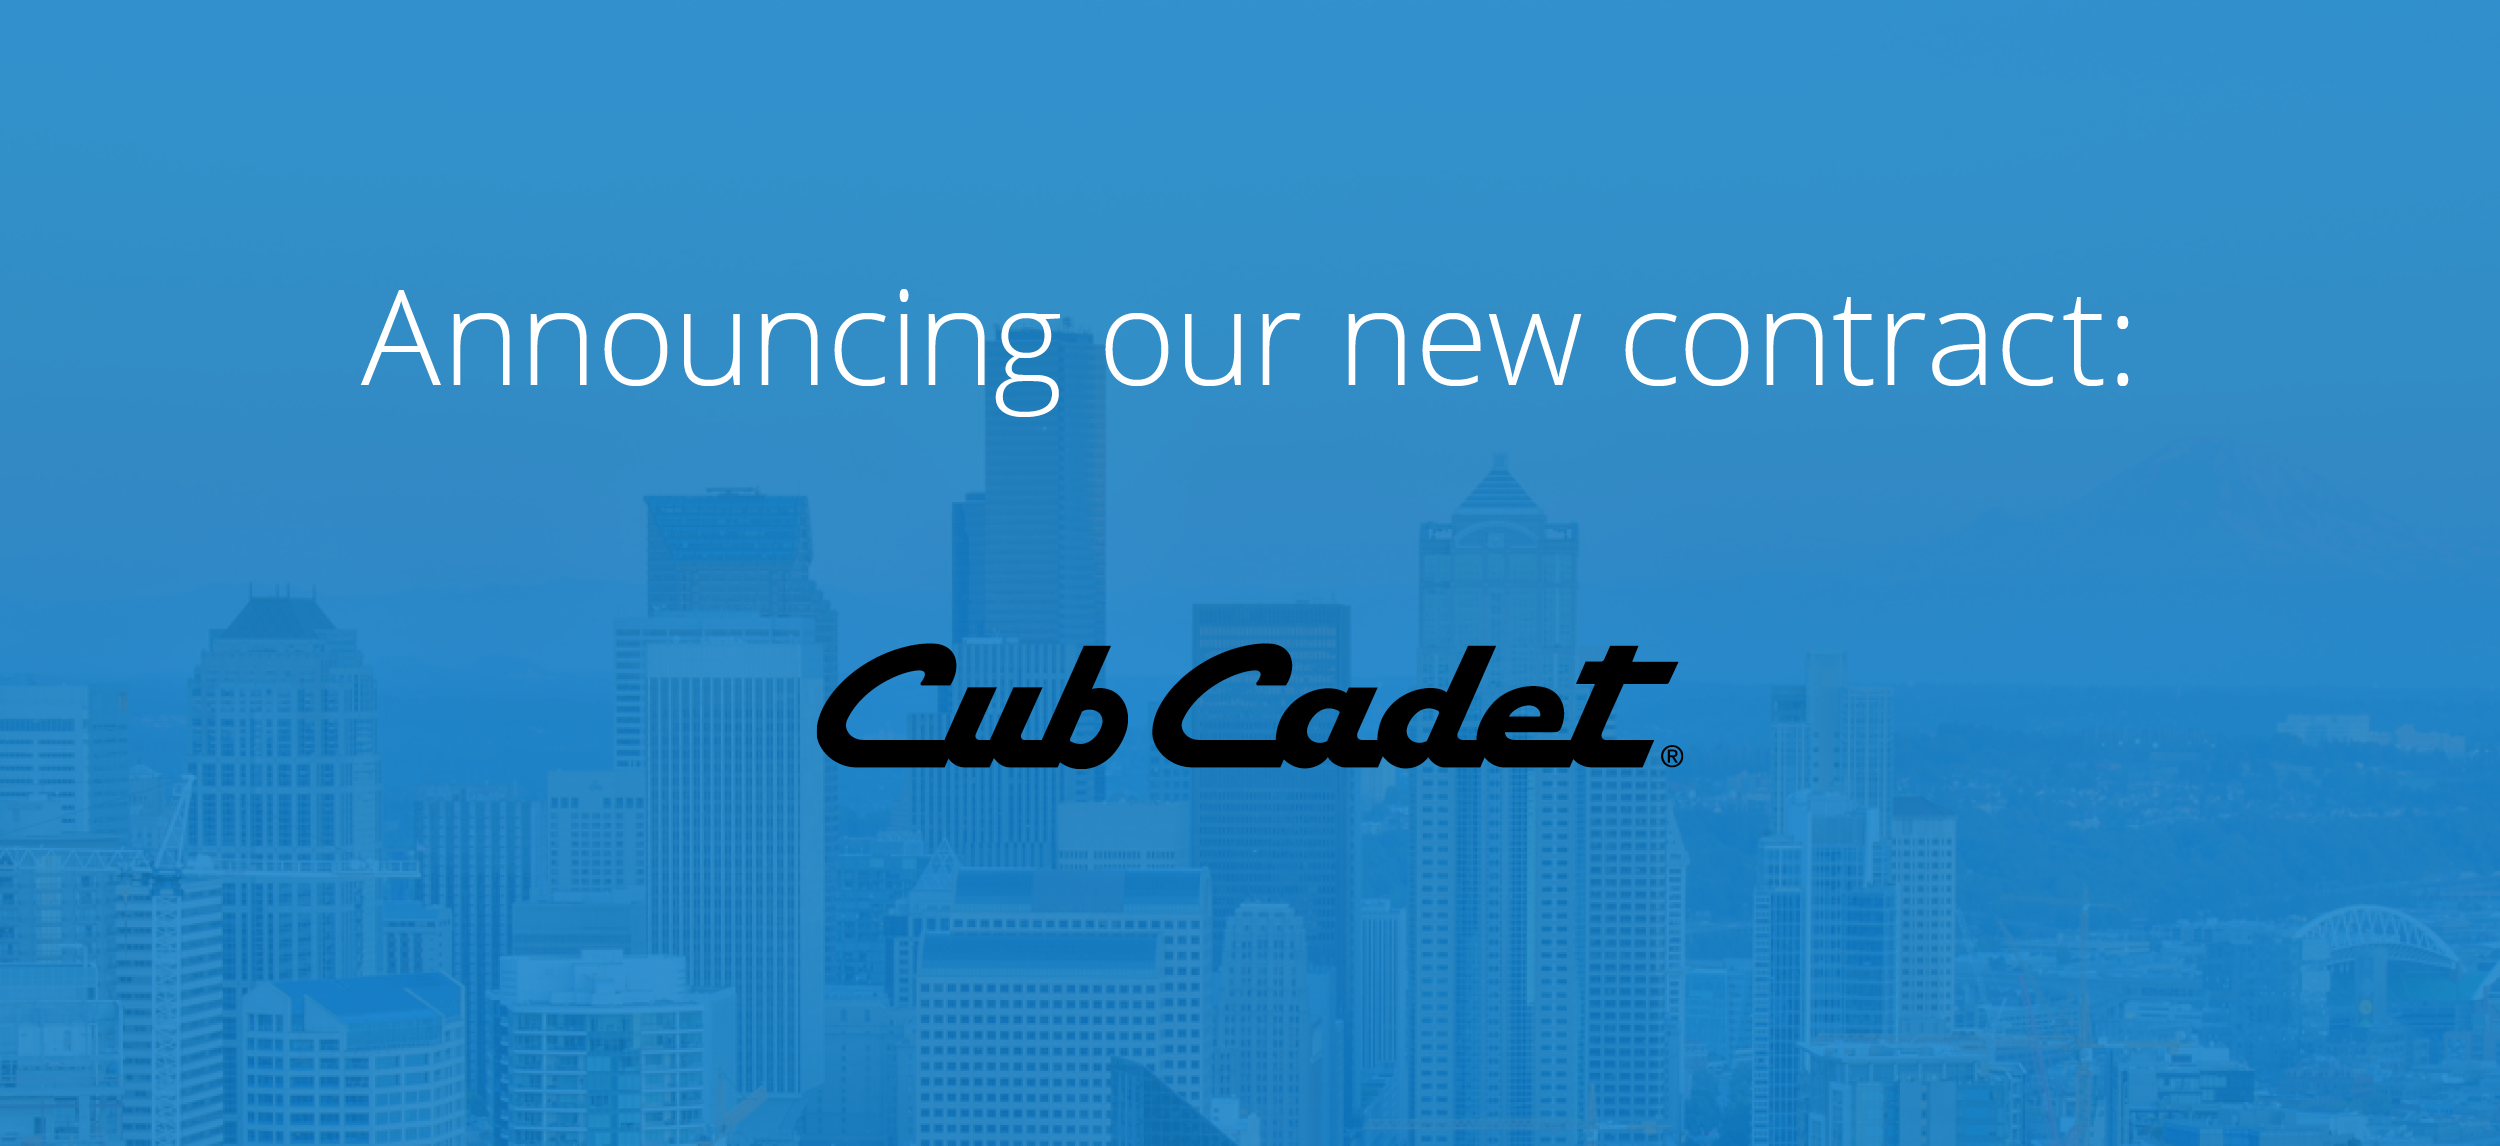 Cub Cadet: Our Newest Contract